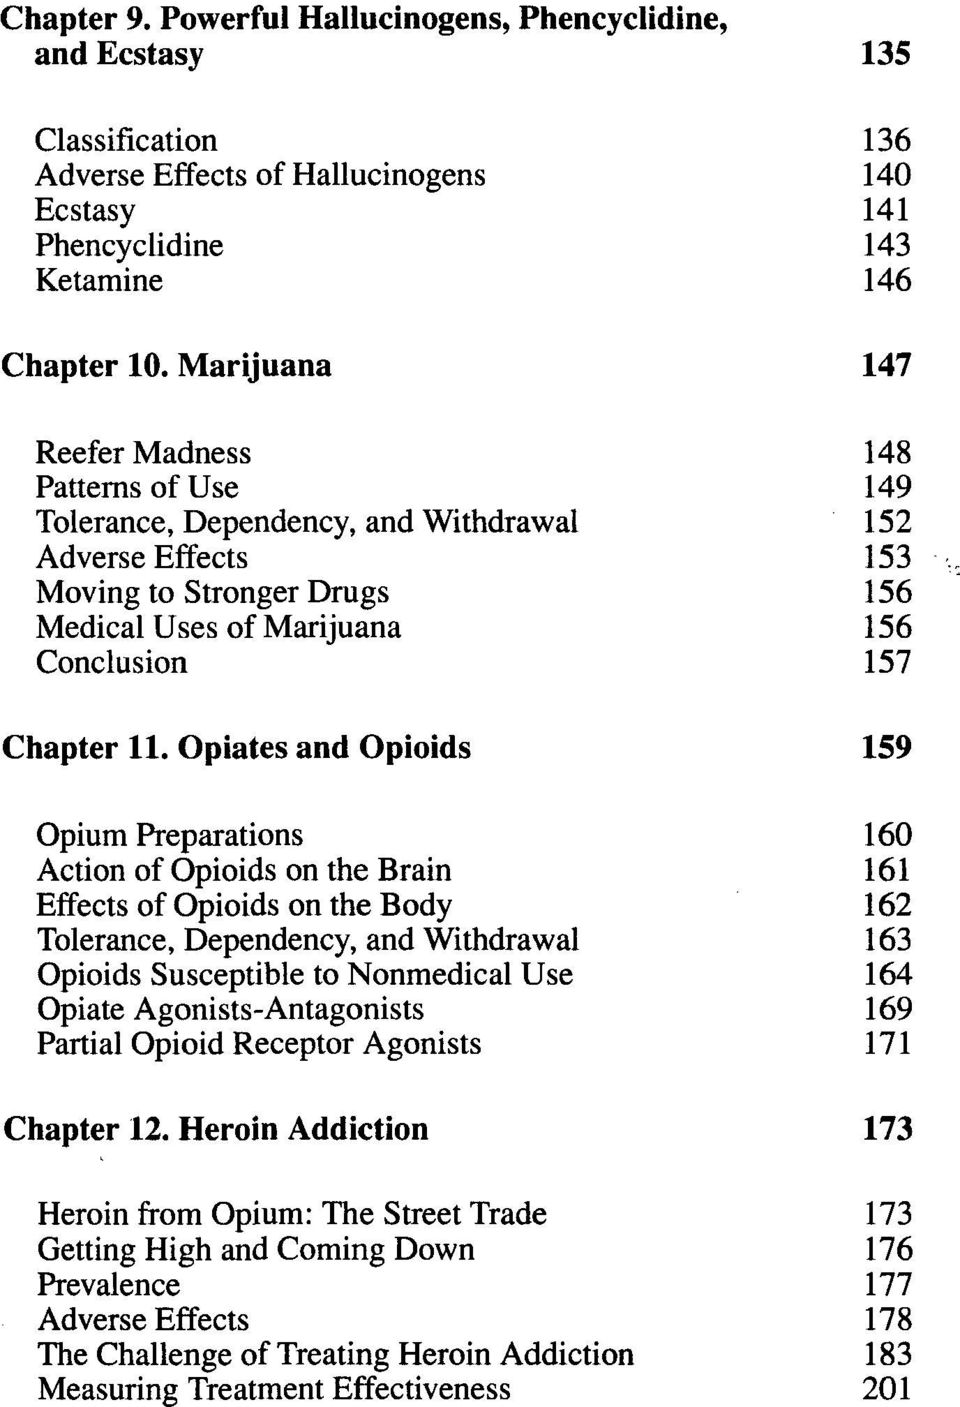 Opiates and Opioids 159 Opium Preparations 160 Action of Opioids on the Brain 161 Effects of Opioids on the Body 162 Tolerance, Dependency, and Withdrawal Opioids Susceptible to Nonmedical Use 163